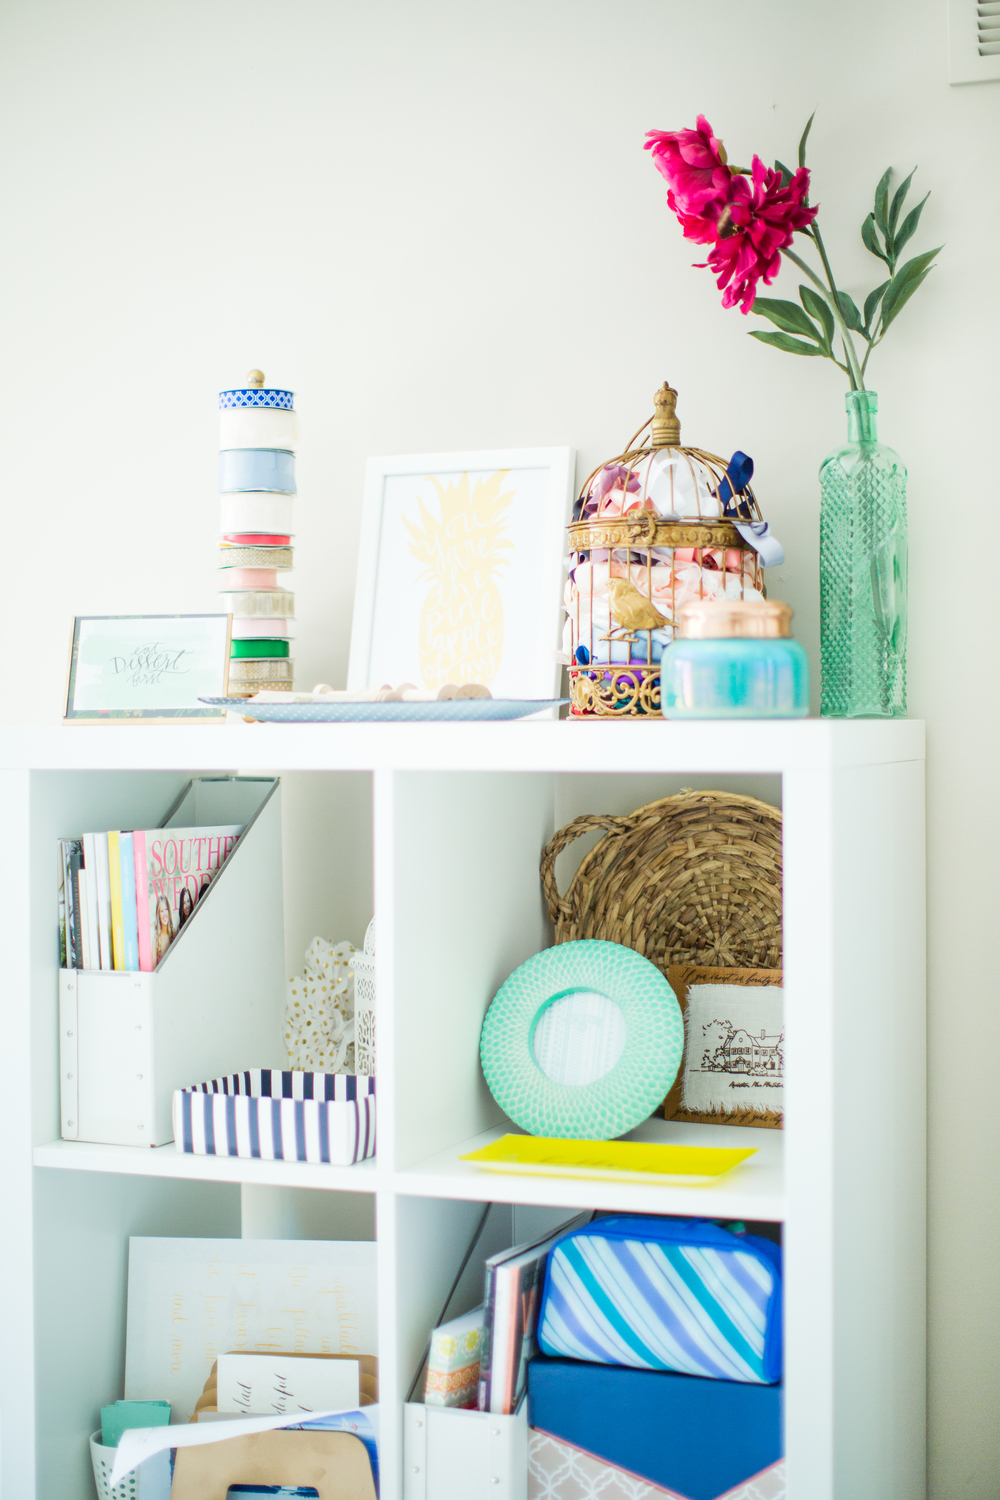 Shelf design ideas | Southern home tour | White and blue decor | The School of Styling - theschoolofstyling.com